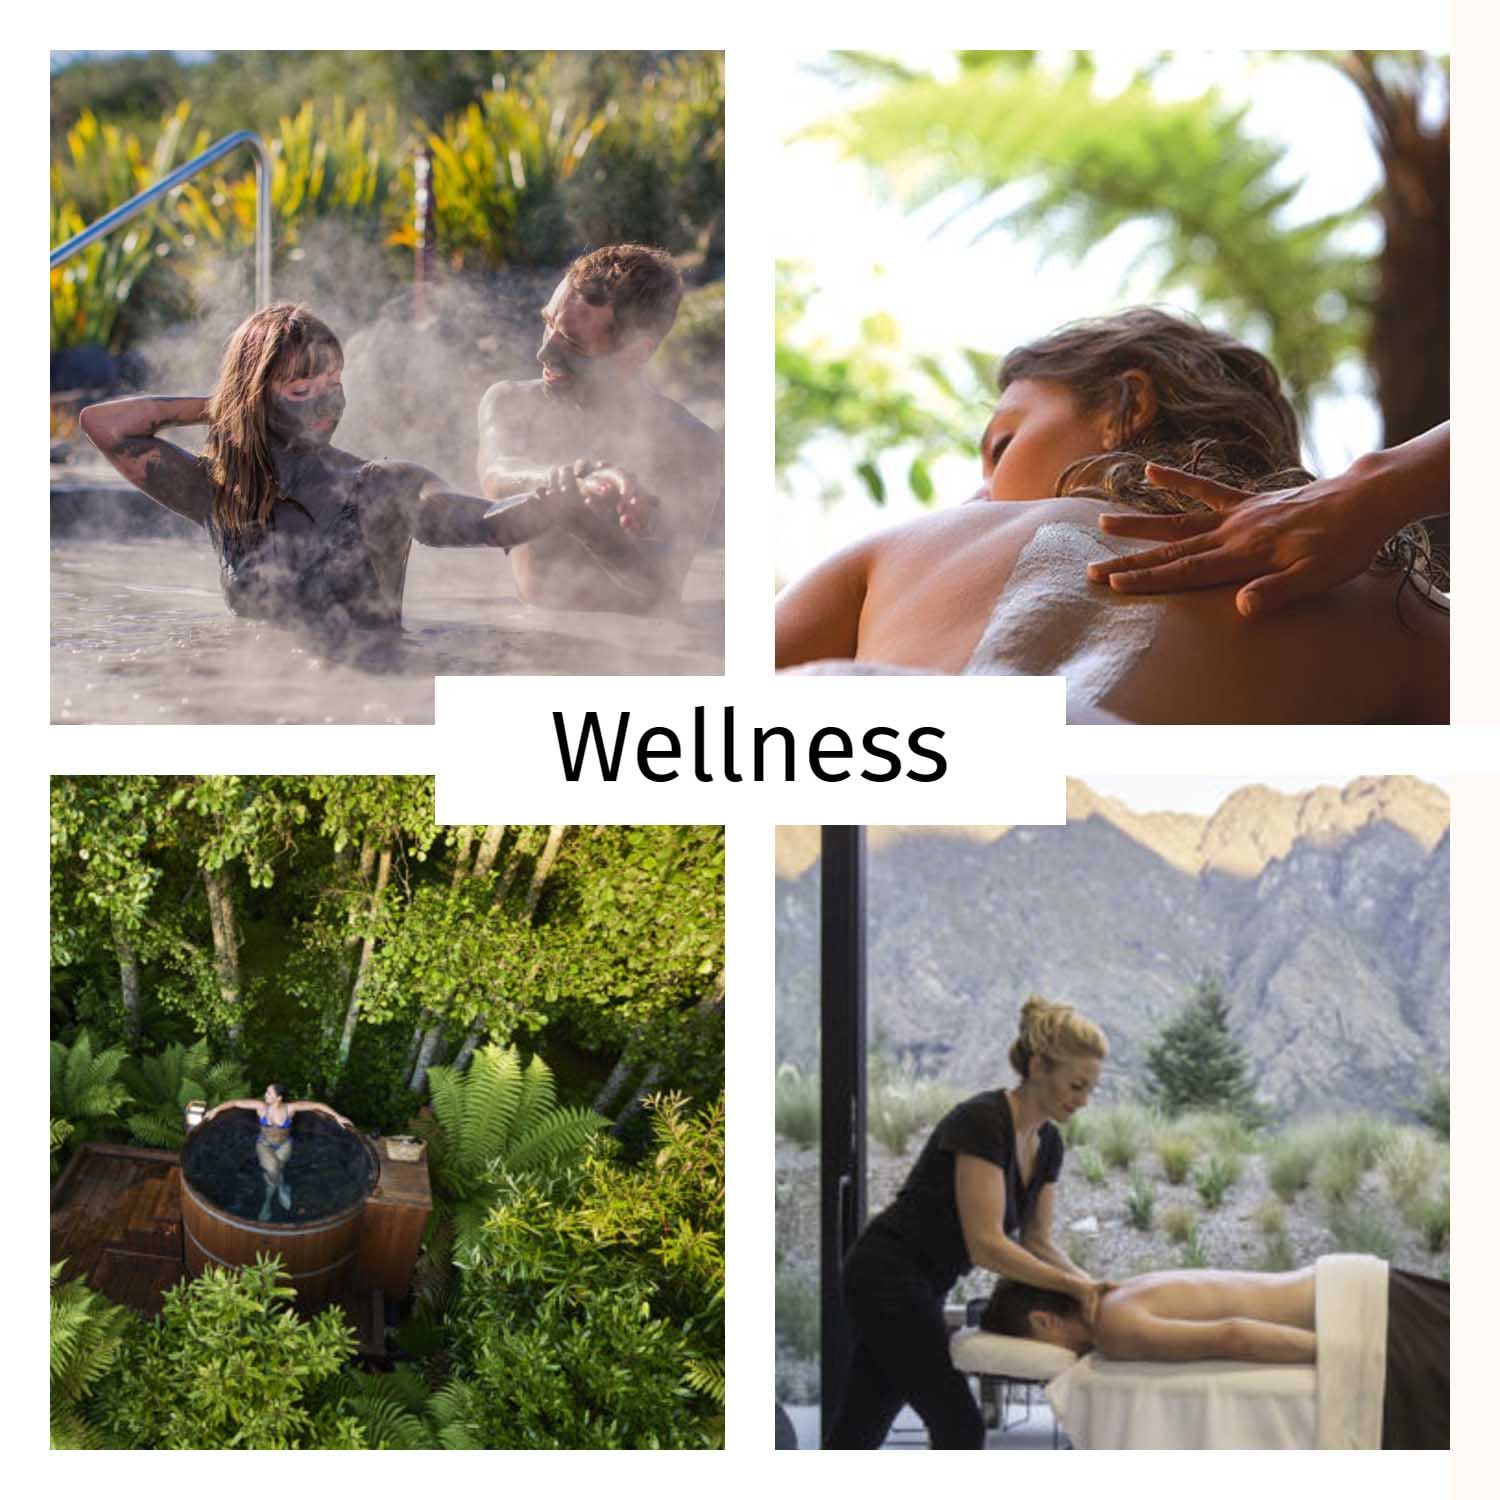 Up to 80 experiences per gift package